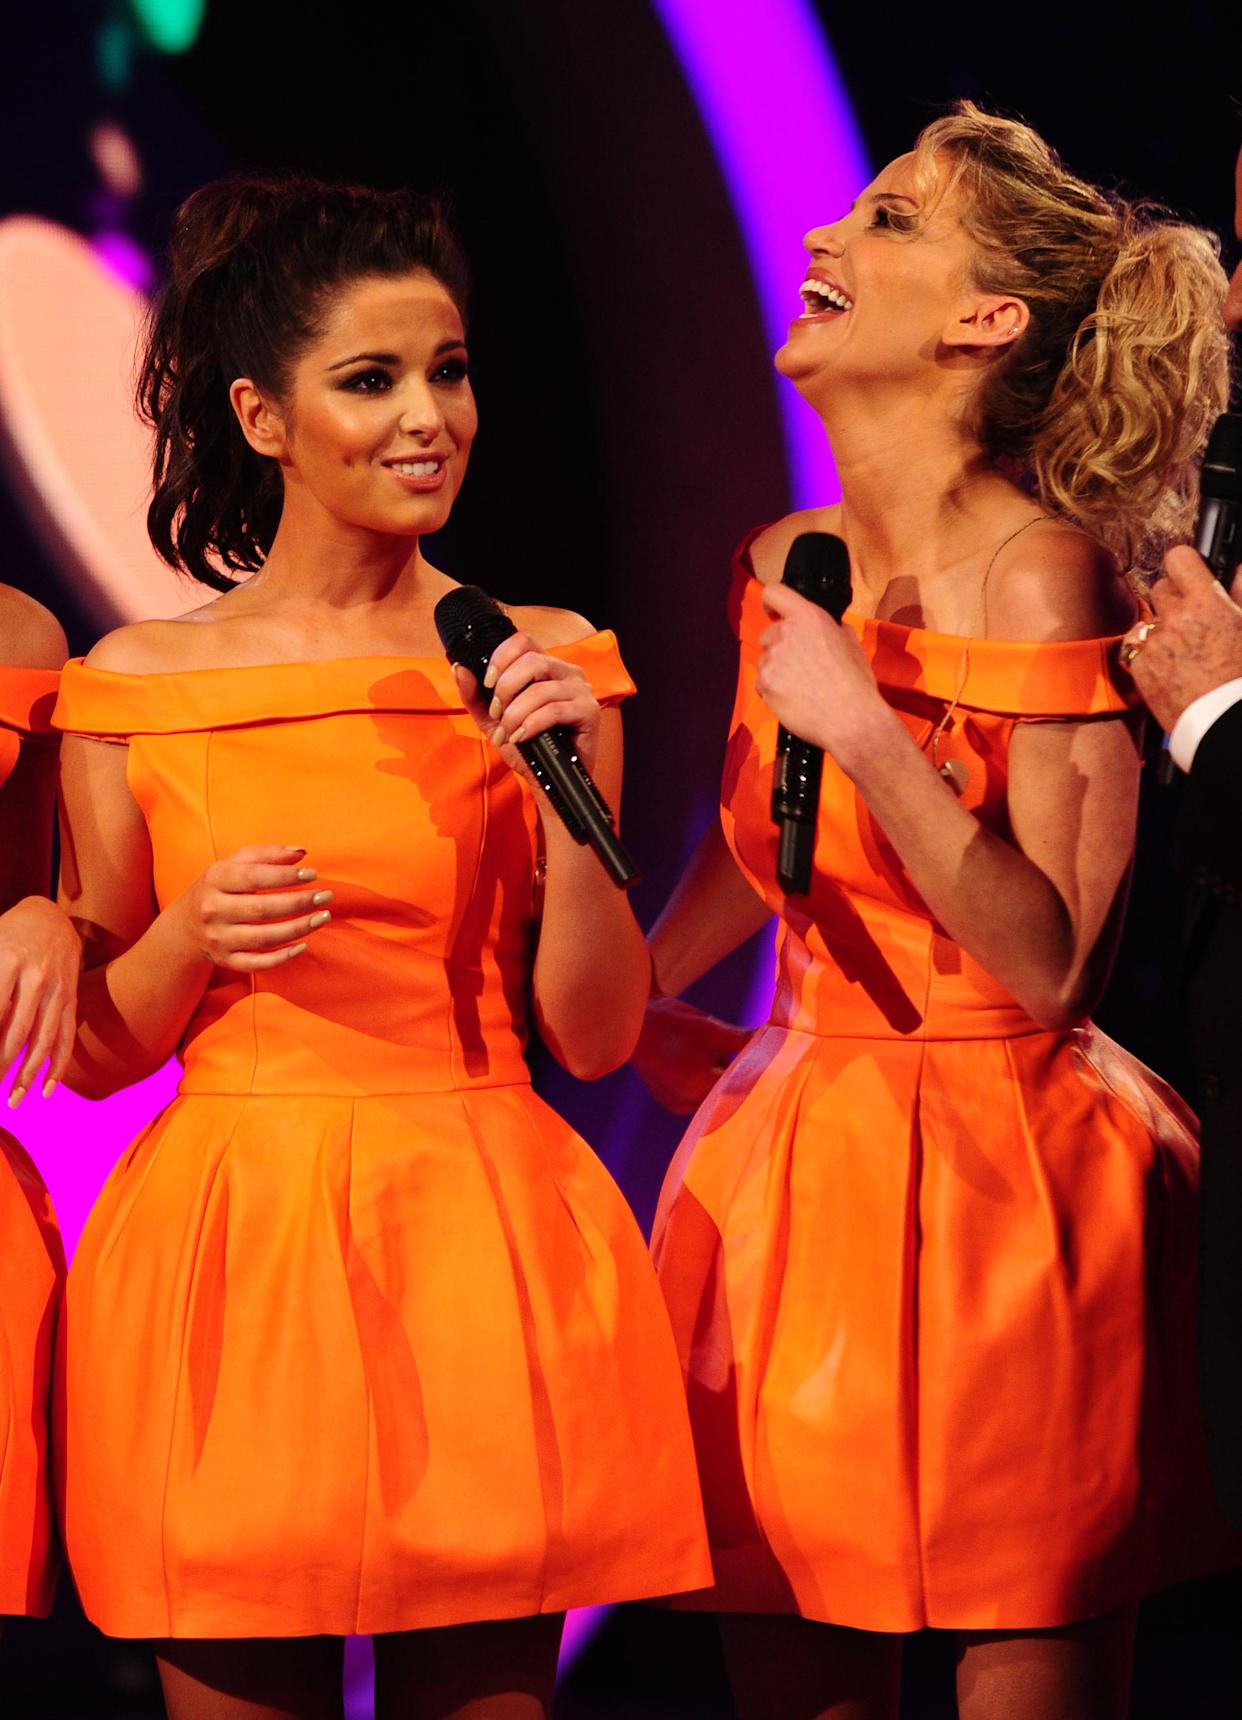 Cheryl Cole and Sarah Harding of girlband Girls Aloud live on stage live during BBC Children In Need, London.   (Photo by Ian West/PA Images via Getty Images)